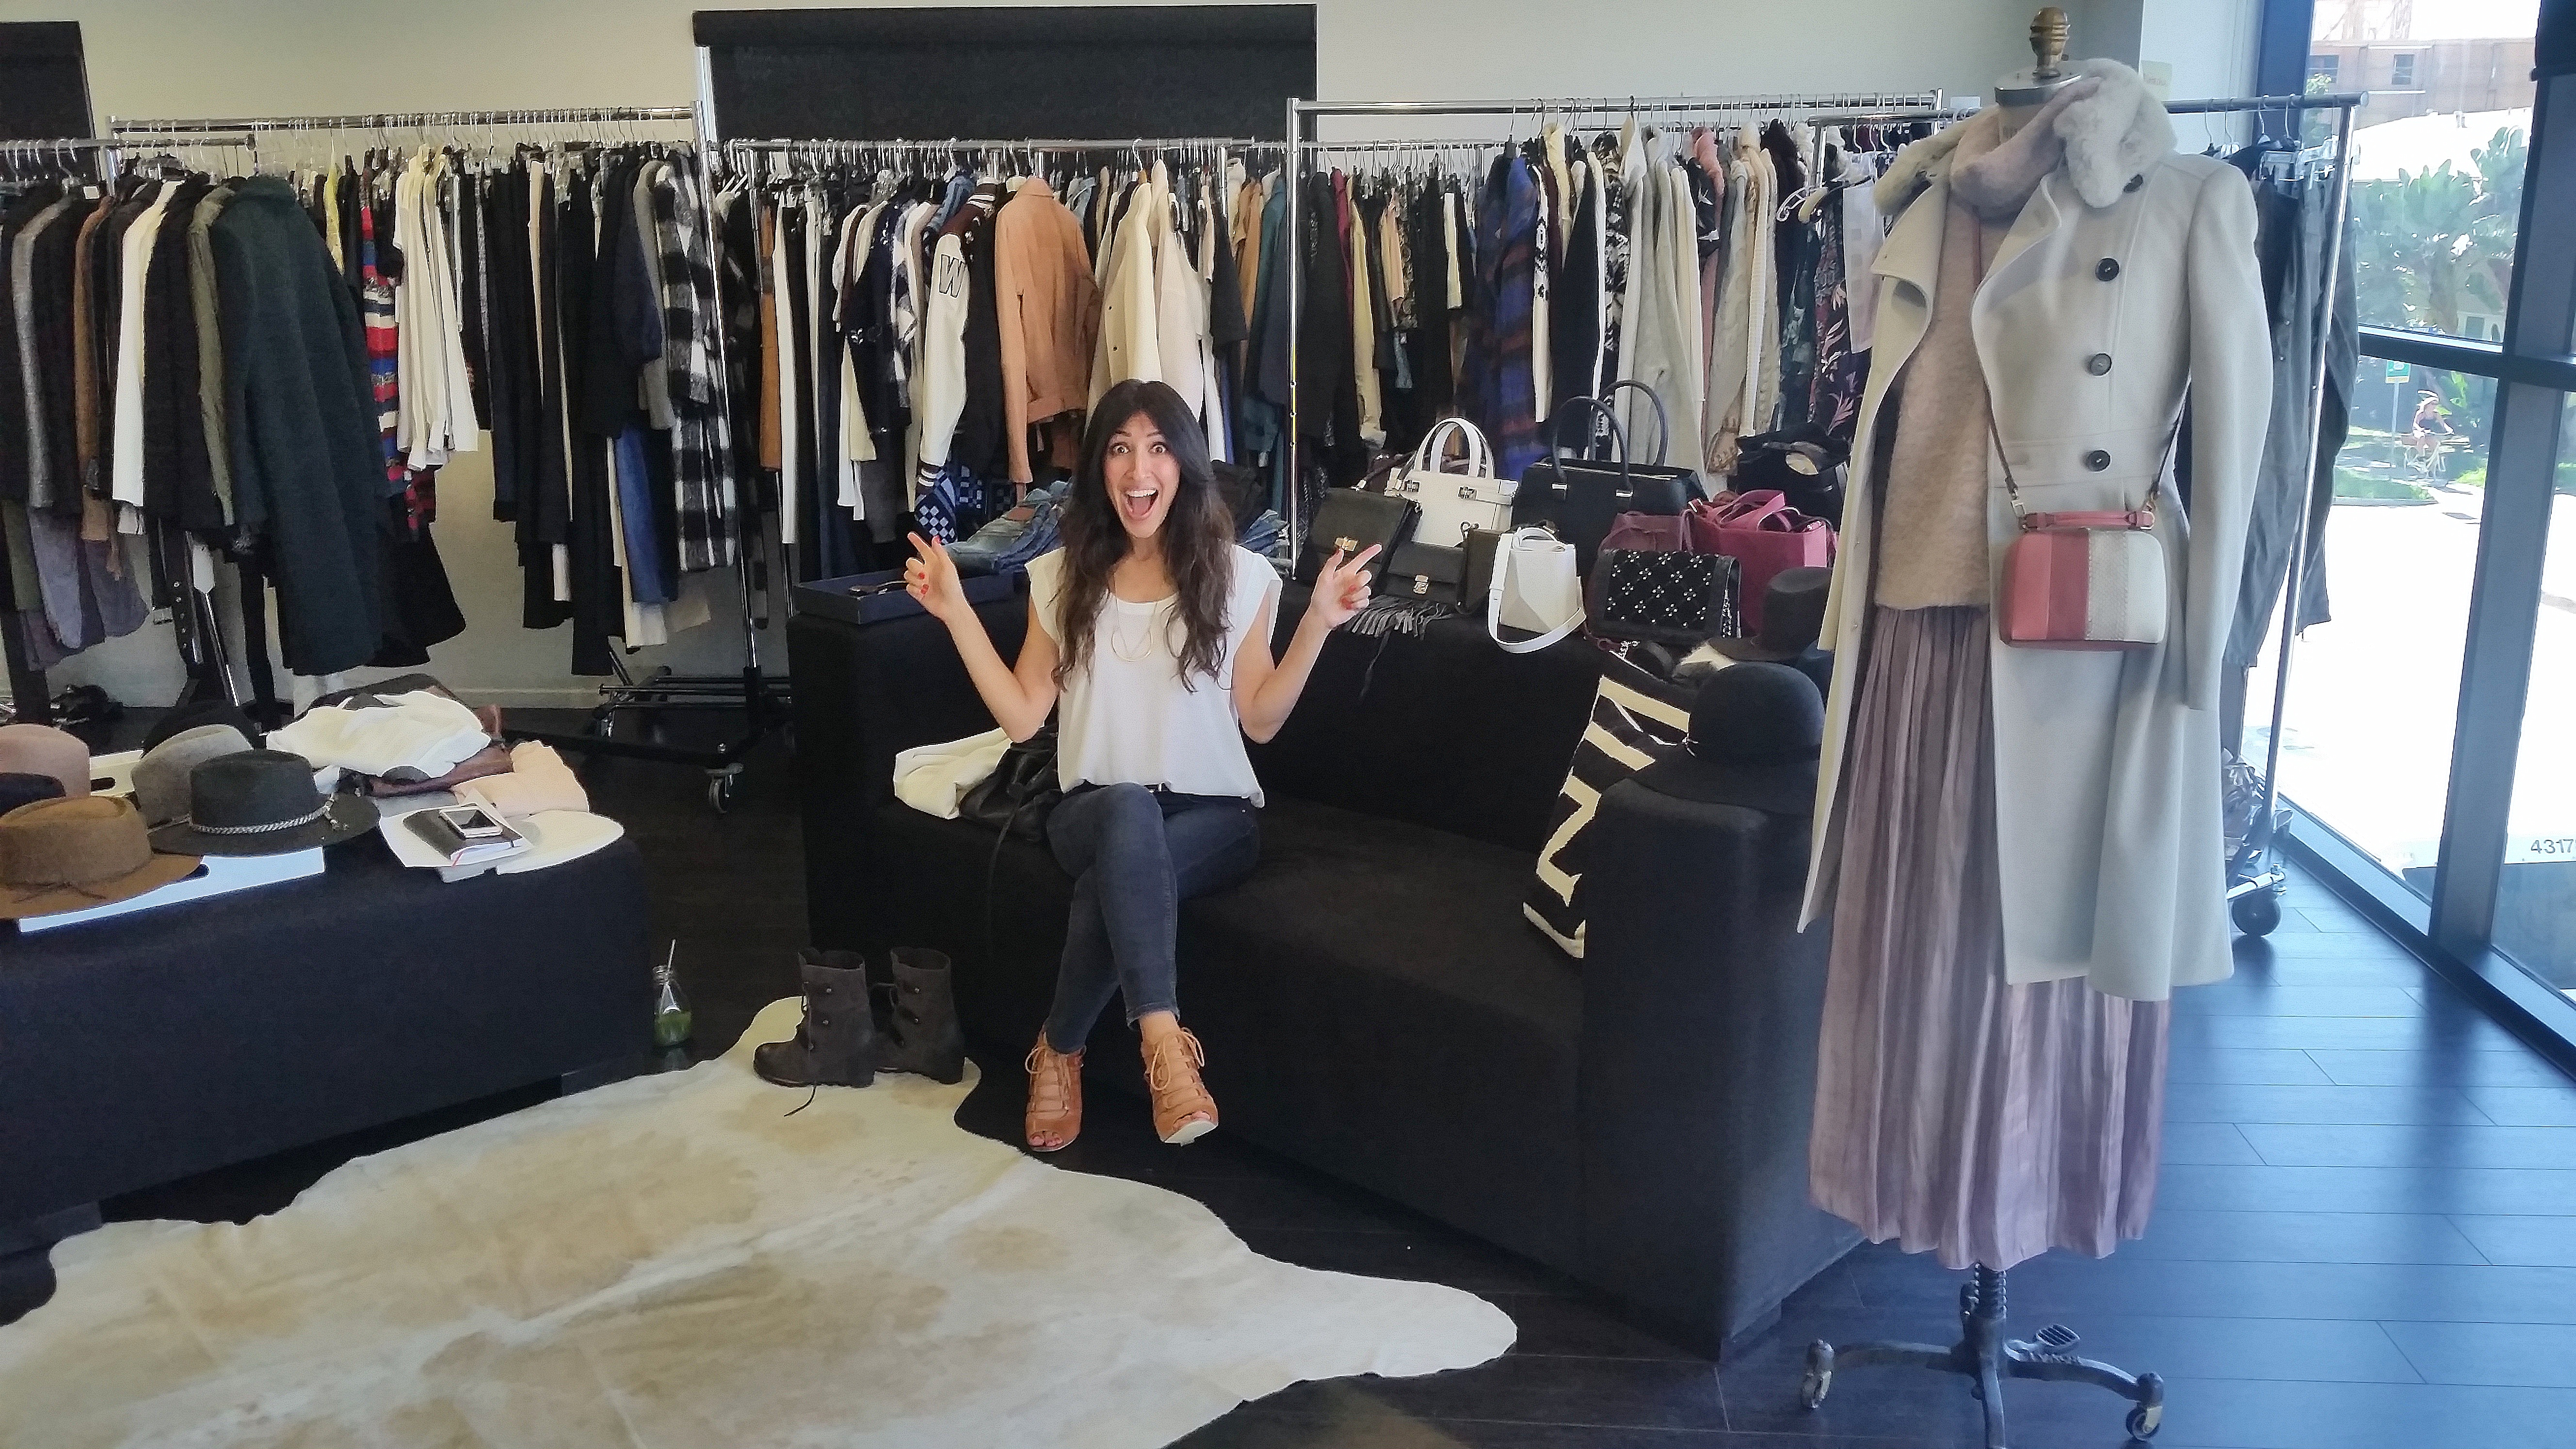 Me geeking out over the endless racks of GORGEOUS clothes!